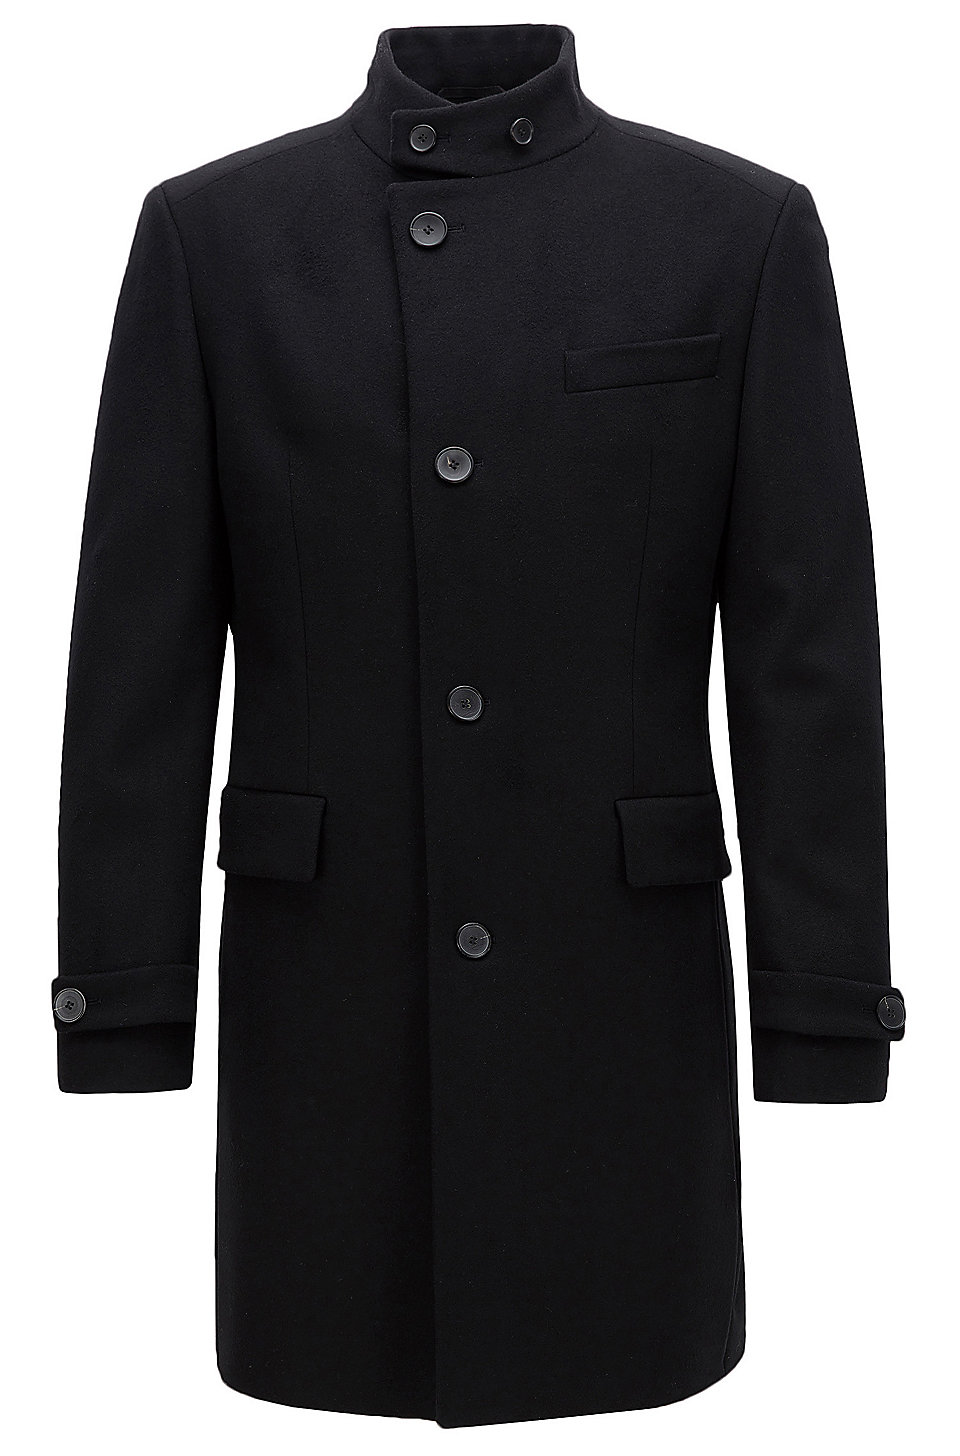 HUGO BOSS® Men's Jackets and Coats | Free Shipping